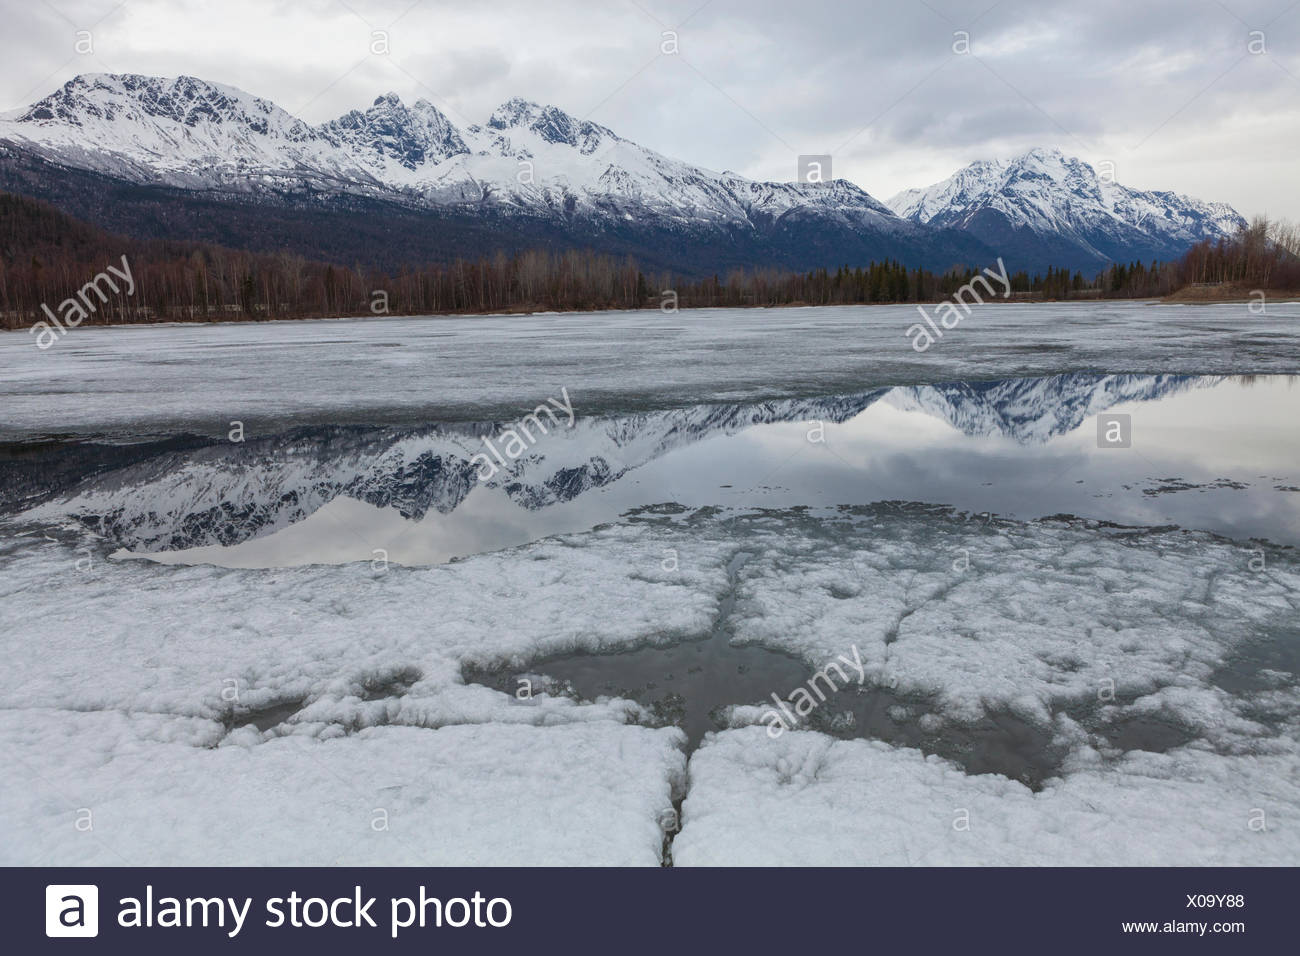 The Chugach Mountains are reflected in Mirror Lake State Wayside Park, Anchorage, Alaska. - Stock Image